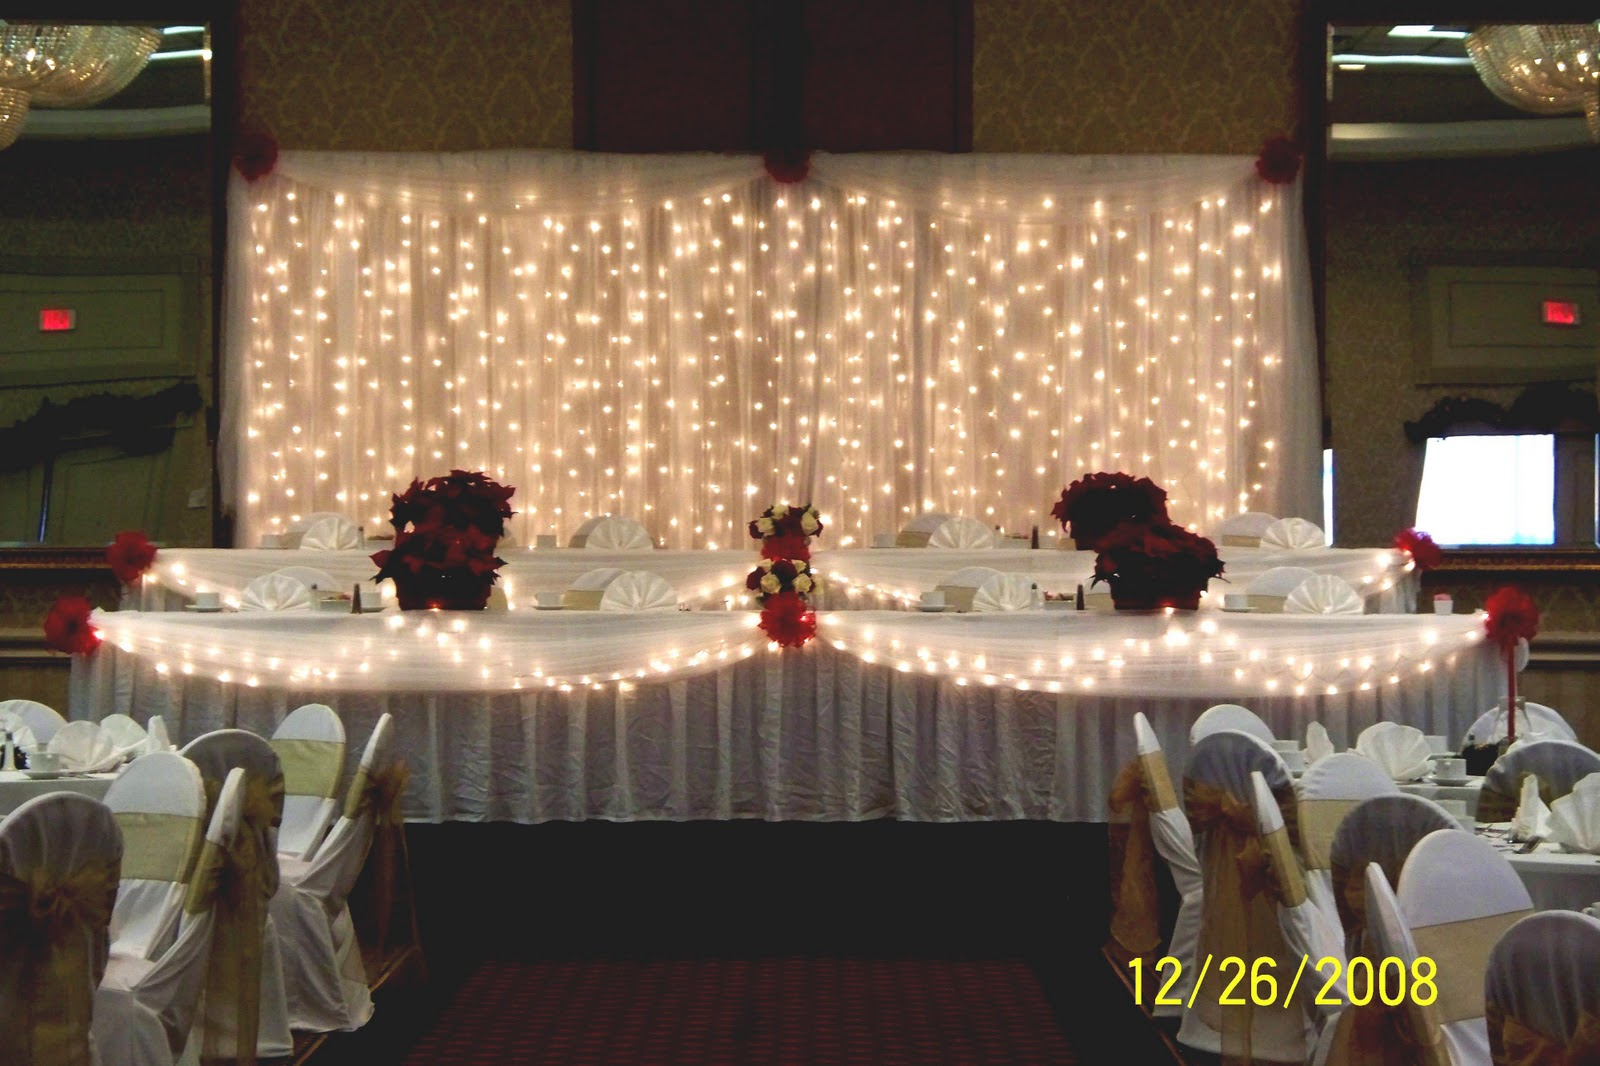 rent bay rentals weddings wedding for corporate decorations events stuart decor table rental area party event setting